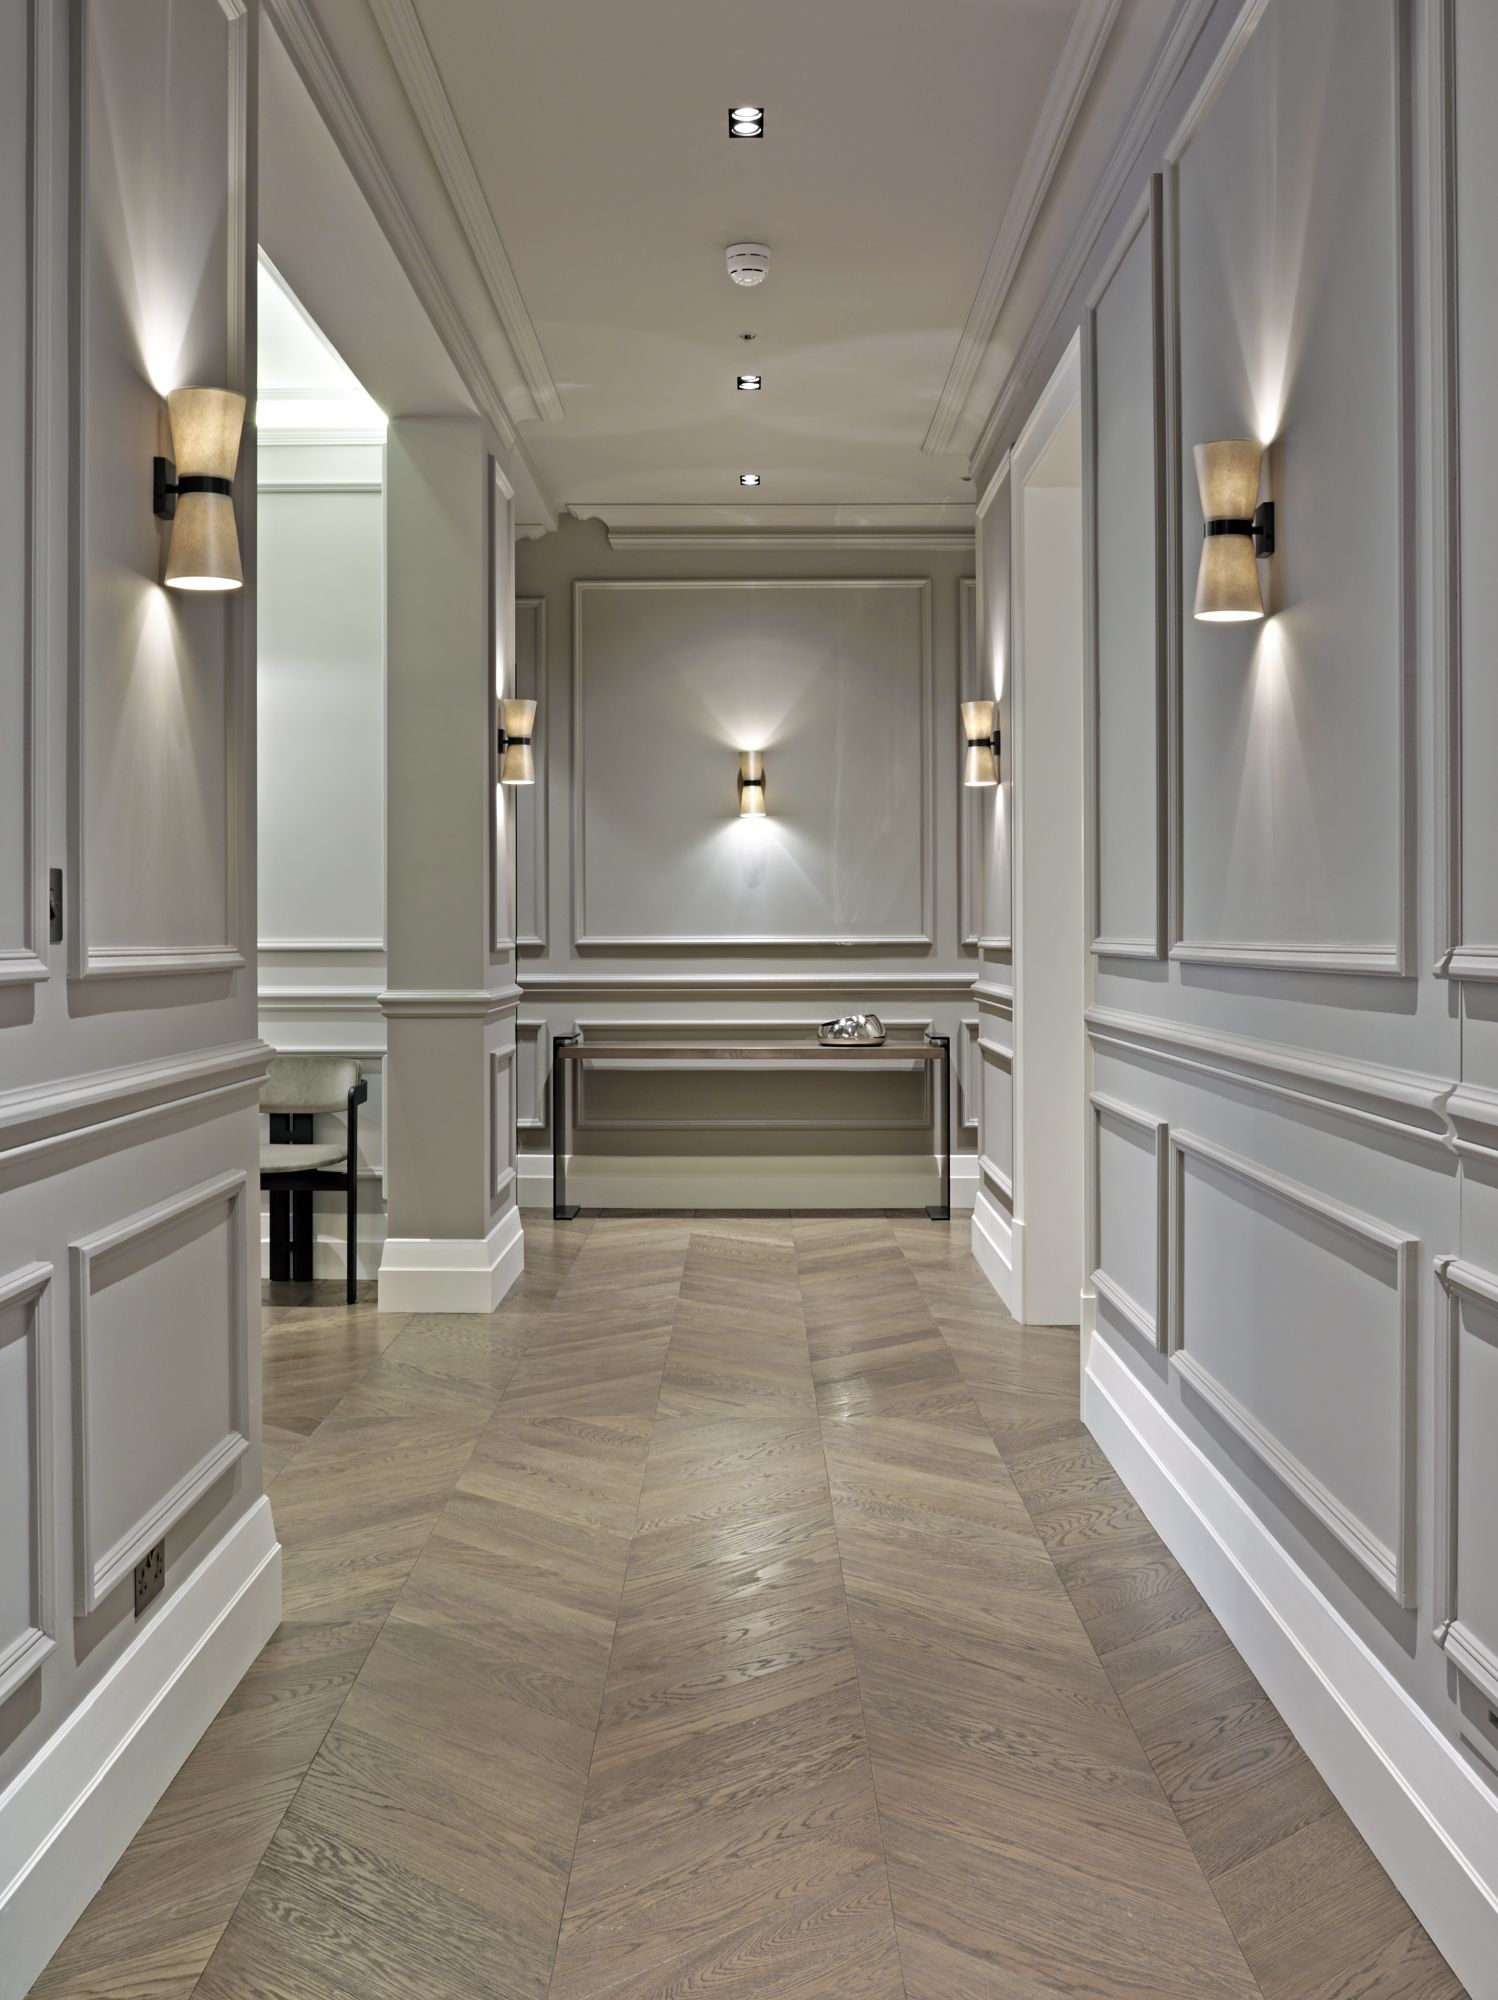 Wainscoting Panels - Designs and Styles for Every Room #wainscotingideasdiningroom